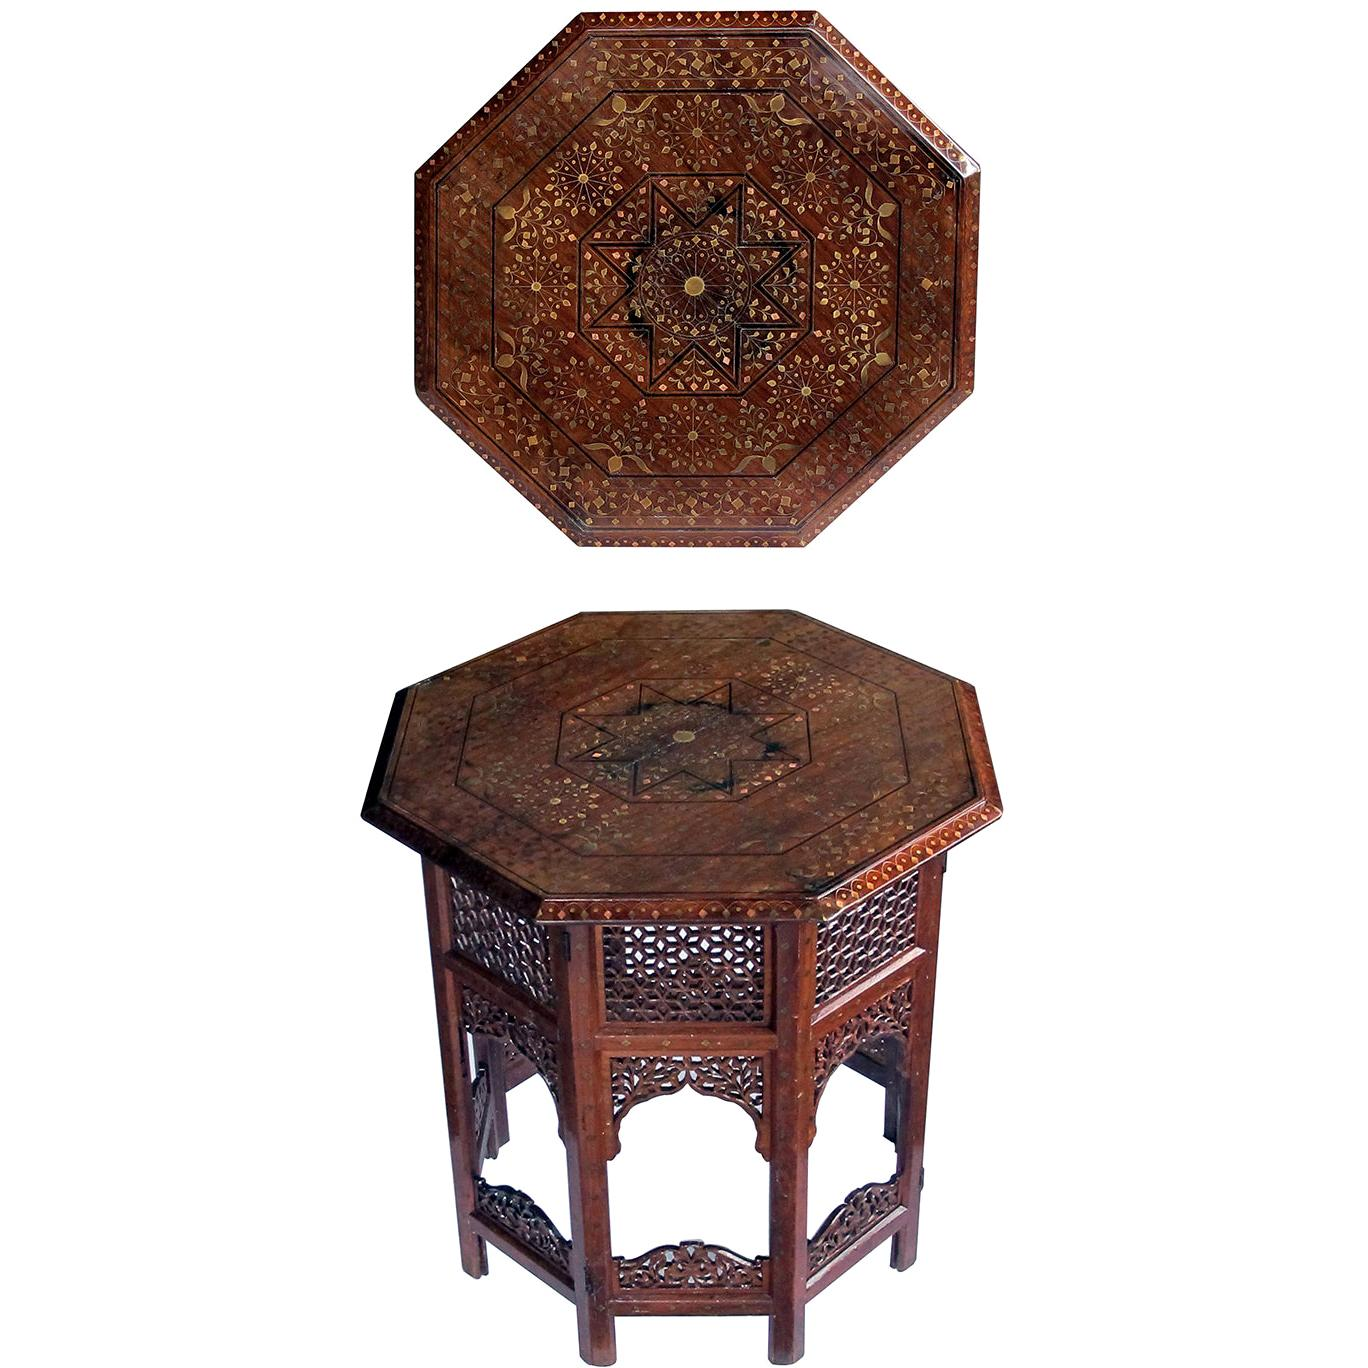 Anglo Indian Octagonal Side/Traveling Table with Brass and Copper Inlay